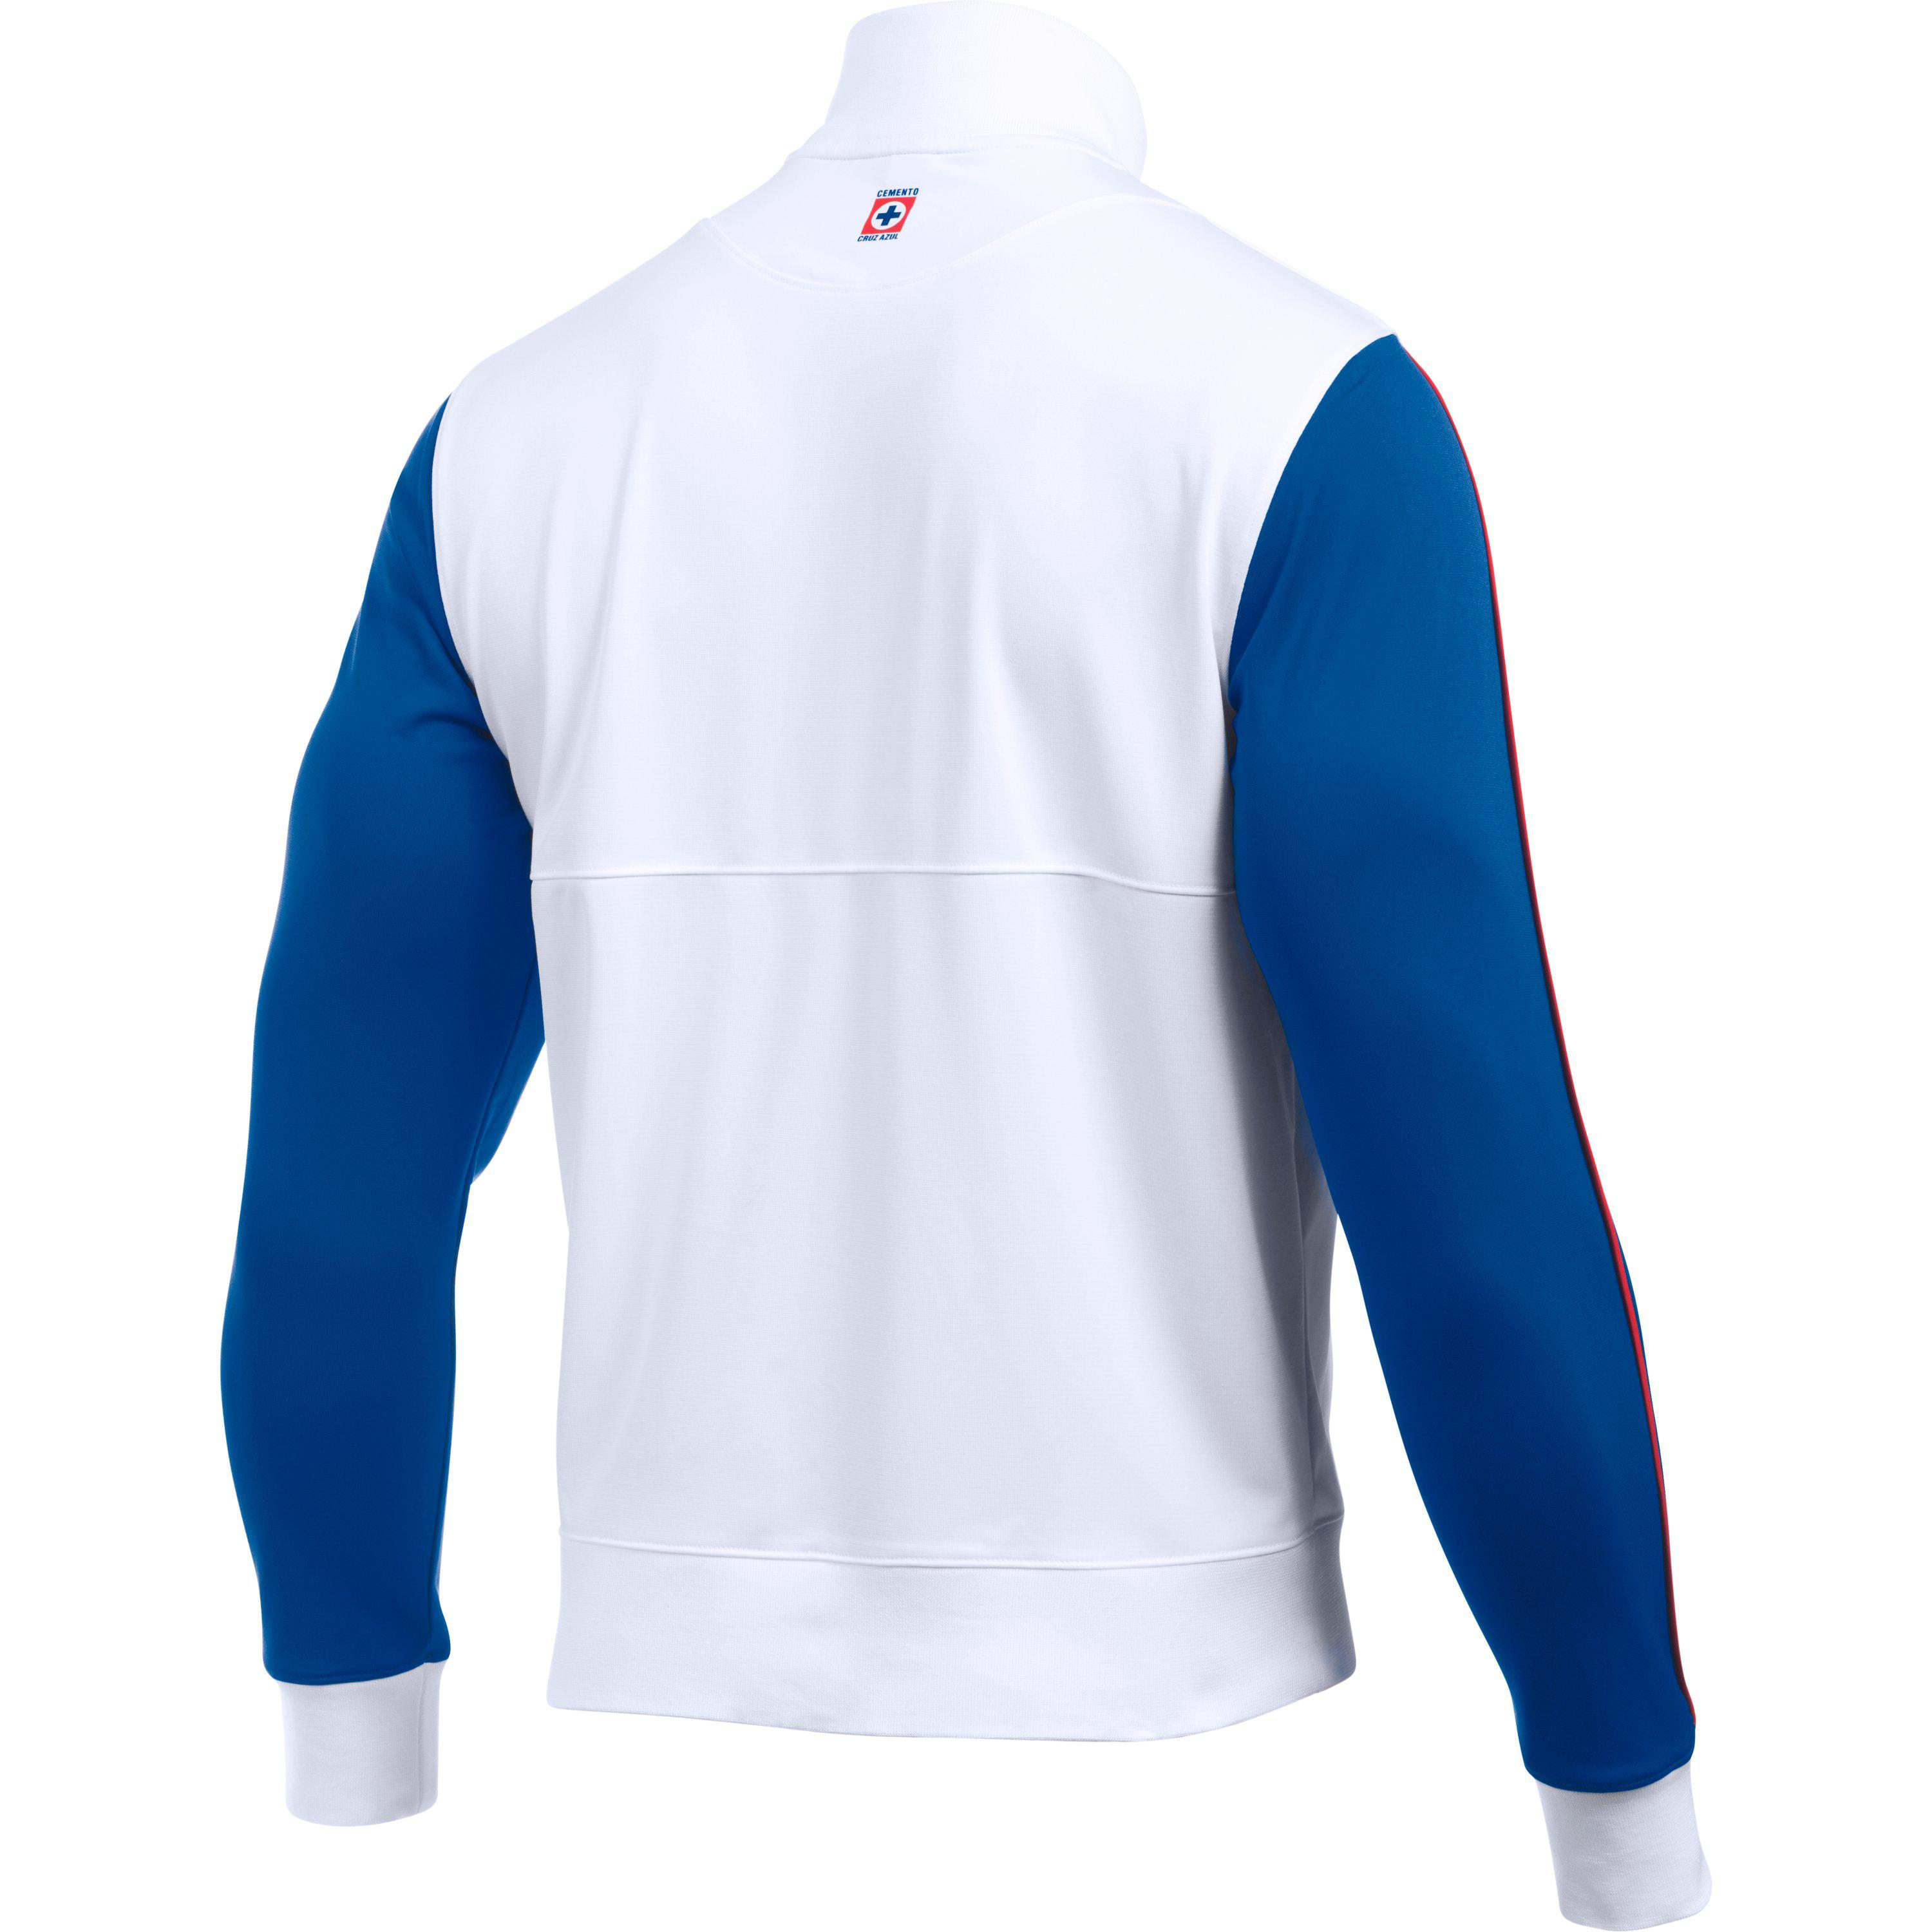 e2edff57222 Under Armour Men s Cruz Azul 16 17 Track Jacket for Men - Lyst